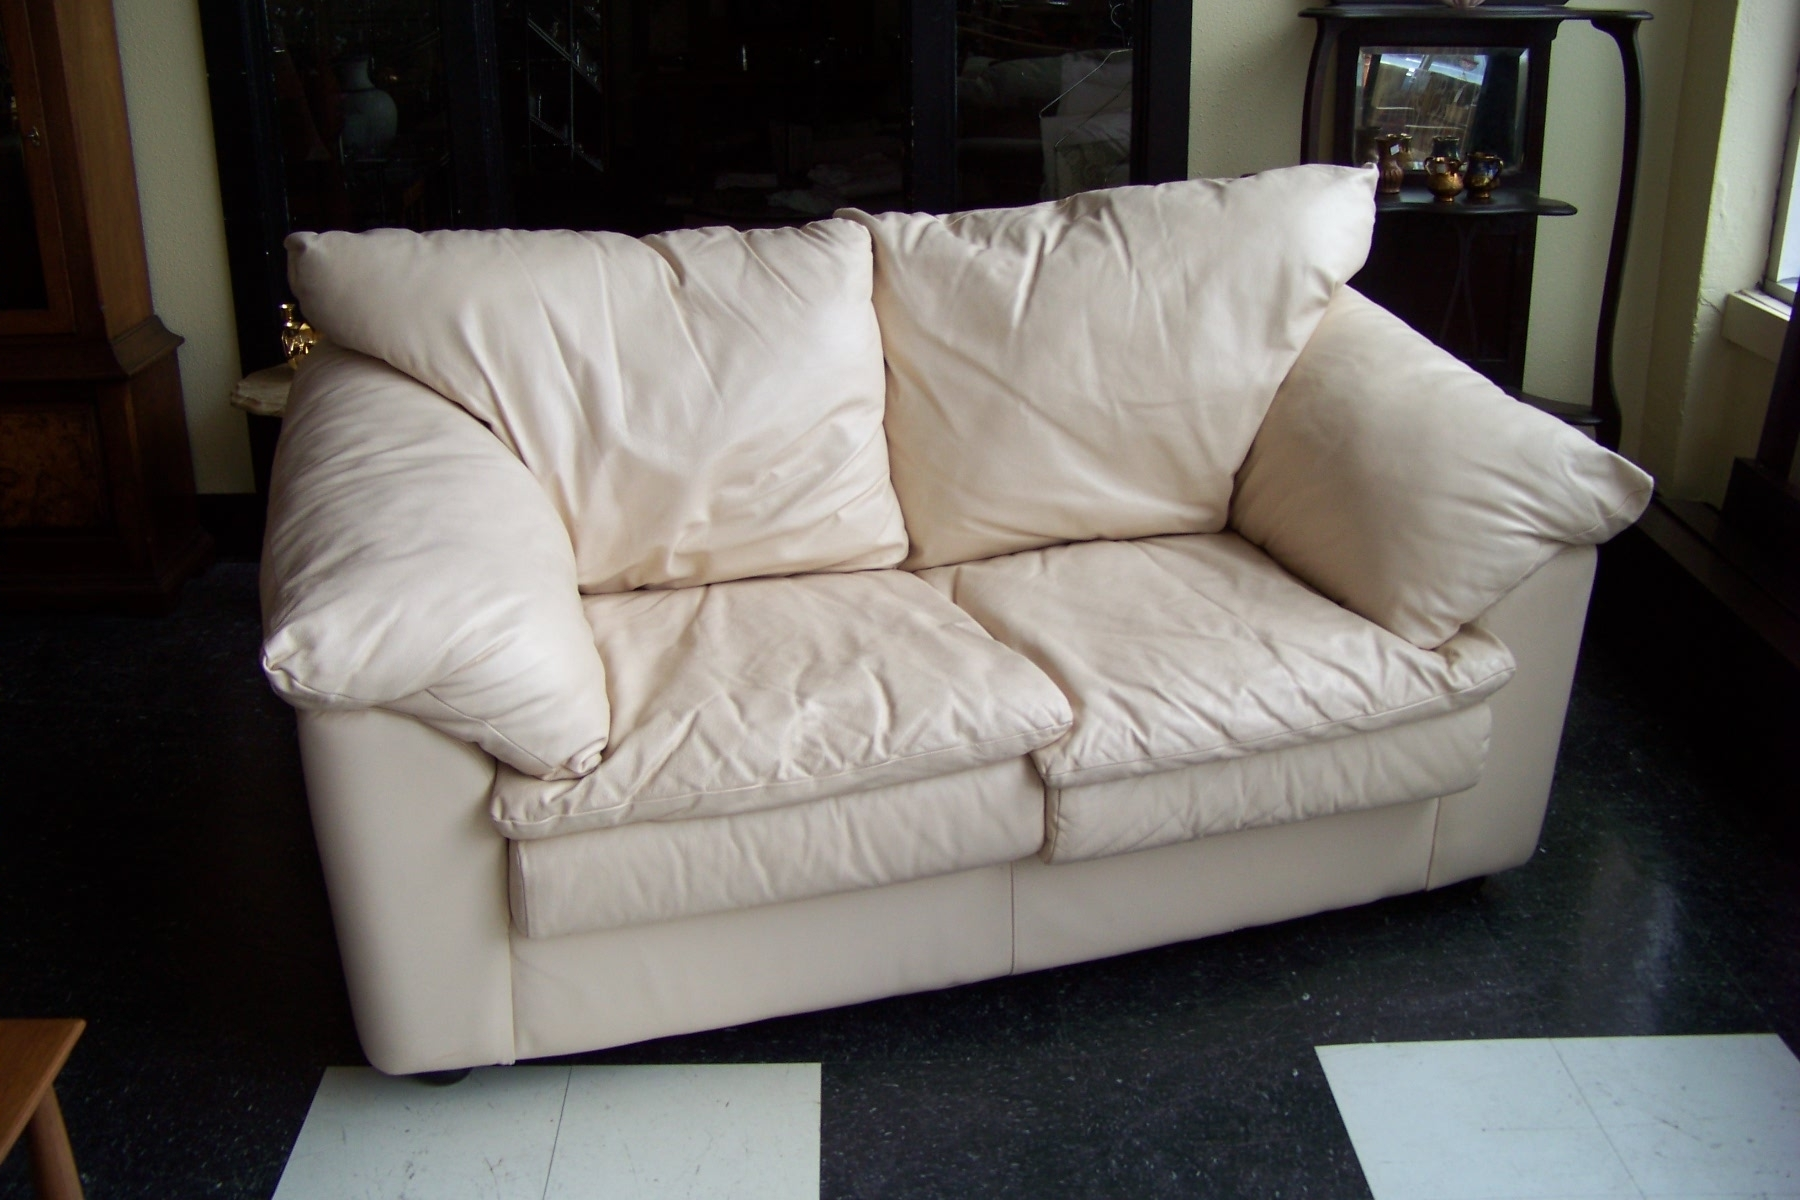 Preferred Articles With Cream Colored Leather Sofa Set Tag Couch Camel Regarding Cream Colored Sofas (View 7 of 20)